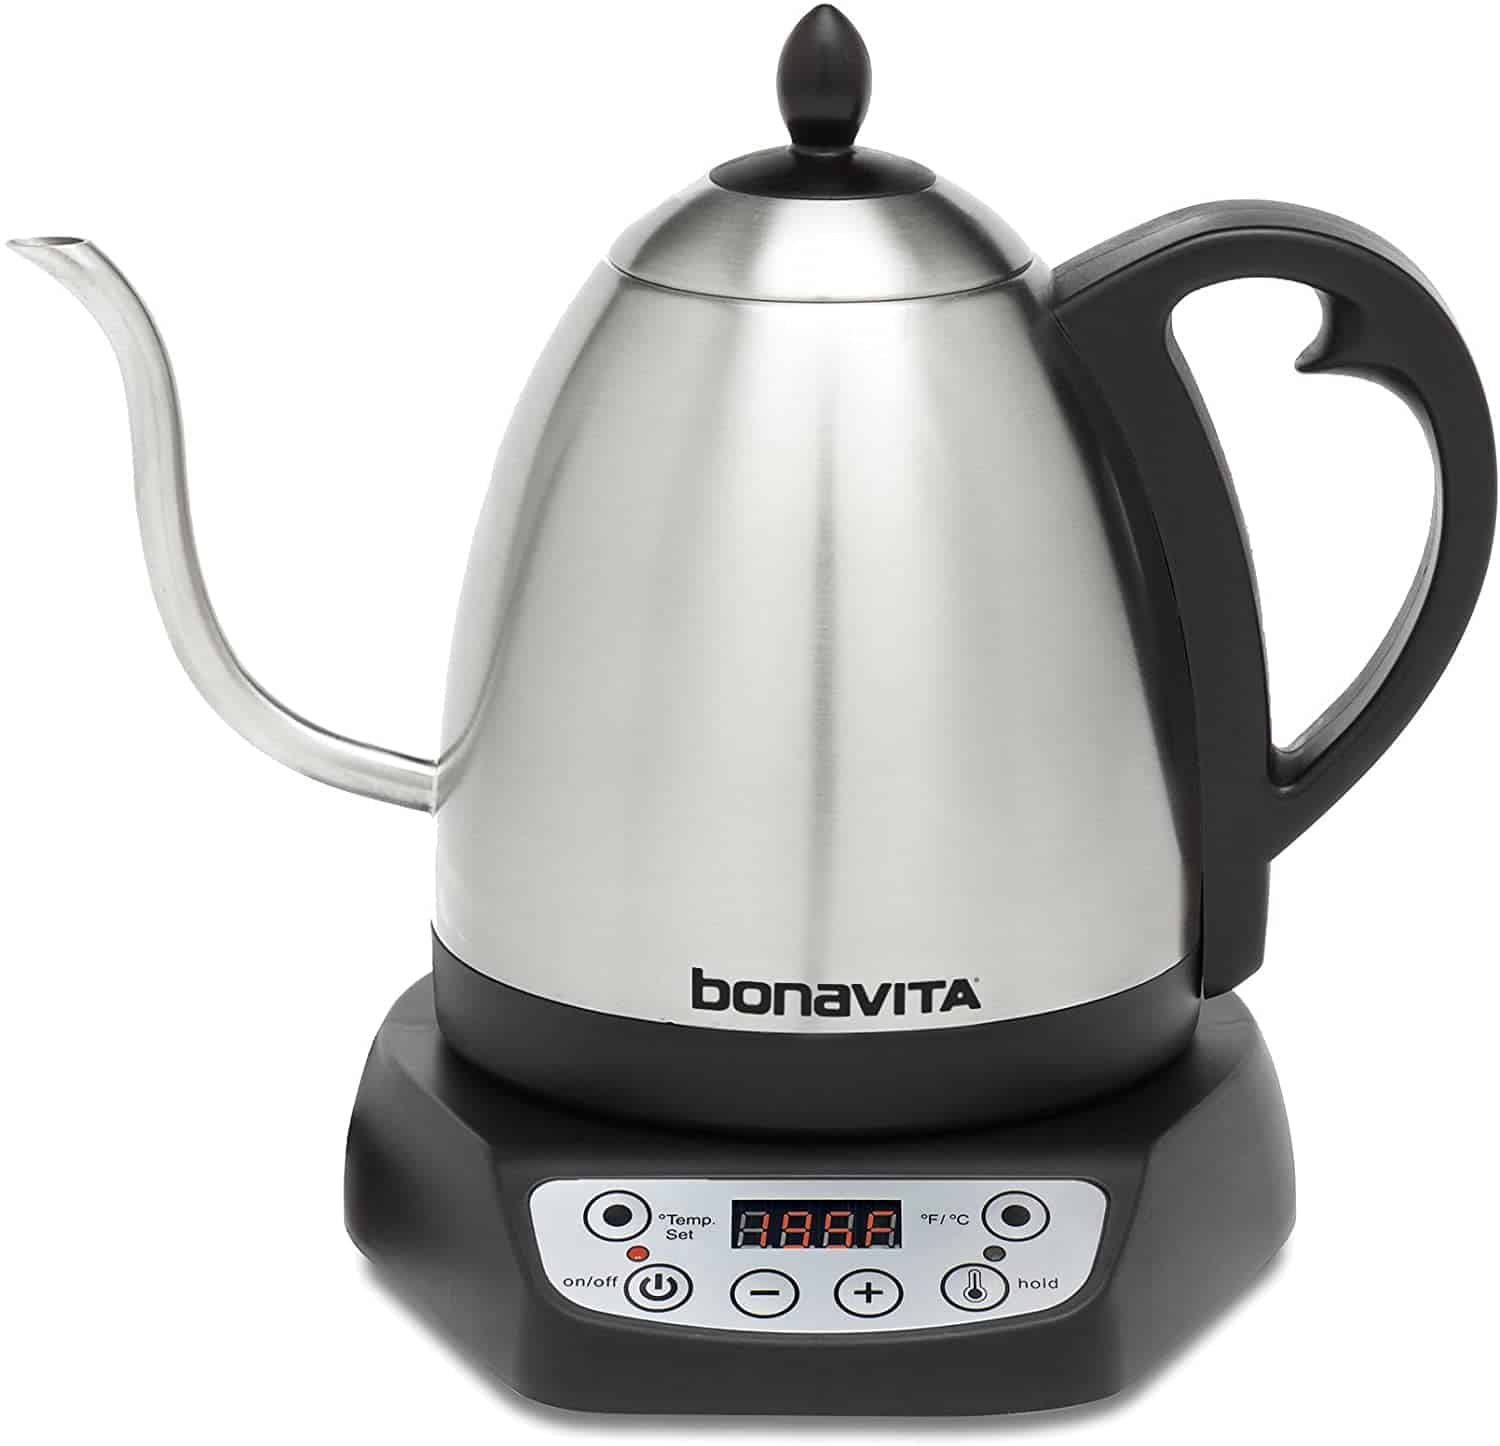 Bonavita Variable Temperature Gooseneck Kettle